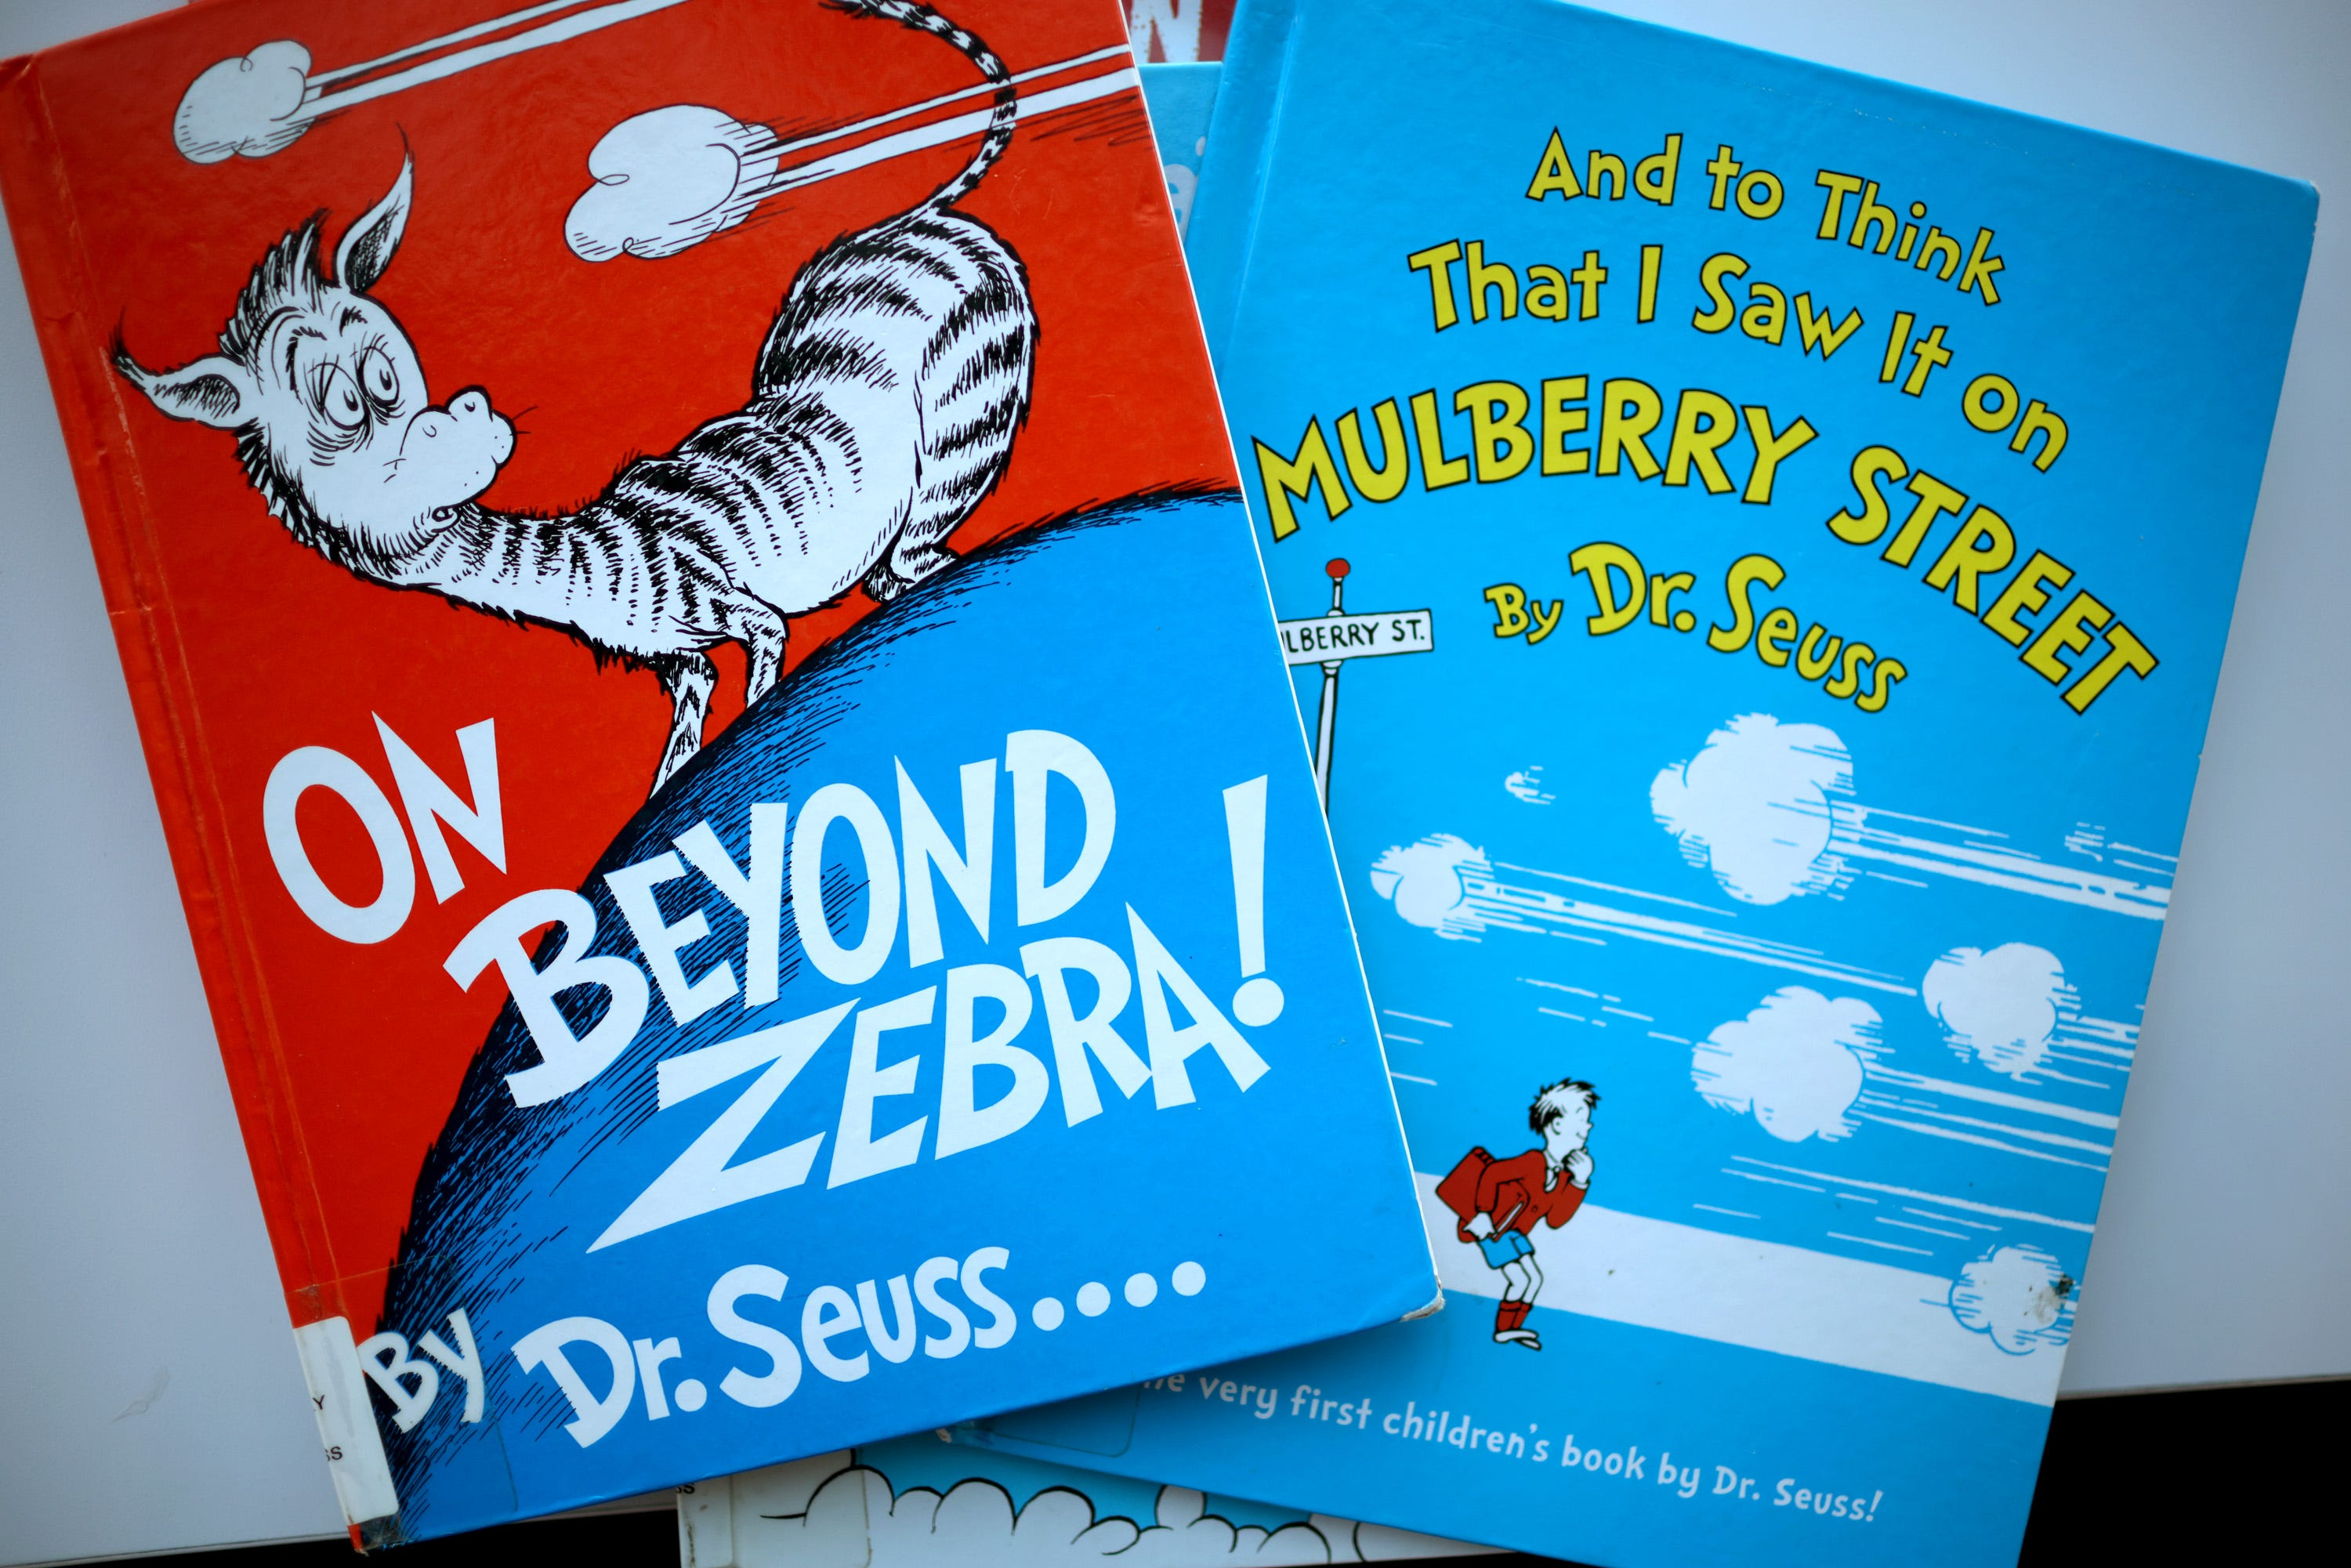 Books by Theodor Seuss Geisel, aka Dr. Seuss, including